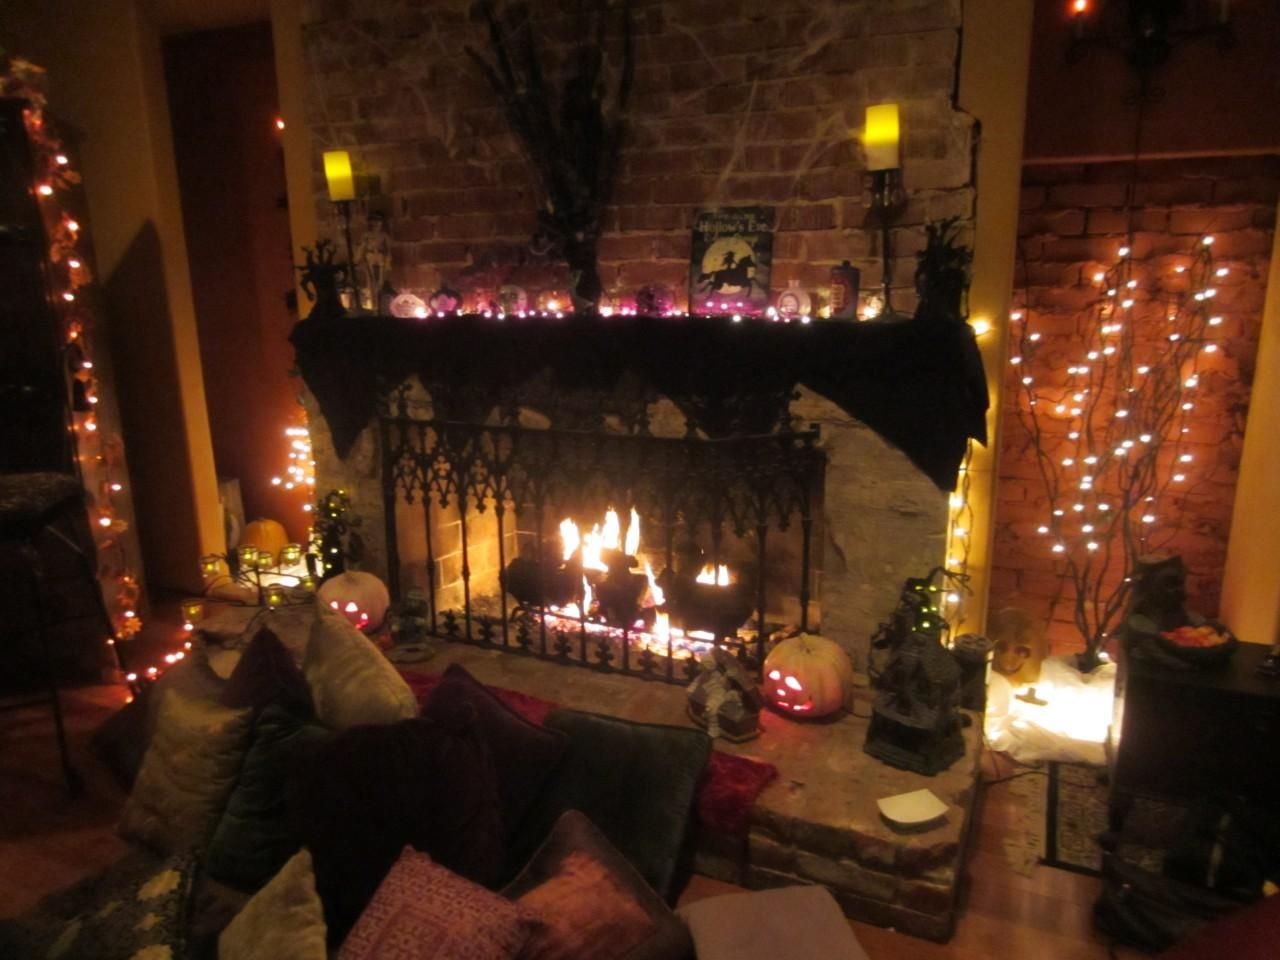 Decoration Ideas Fashionable Spooktacular Halloween Decorations With Fancy Fireplace Your Beautiful Living Room Fascinating Deco